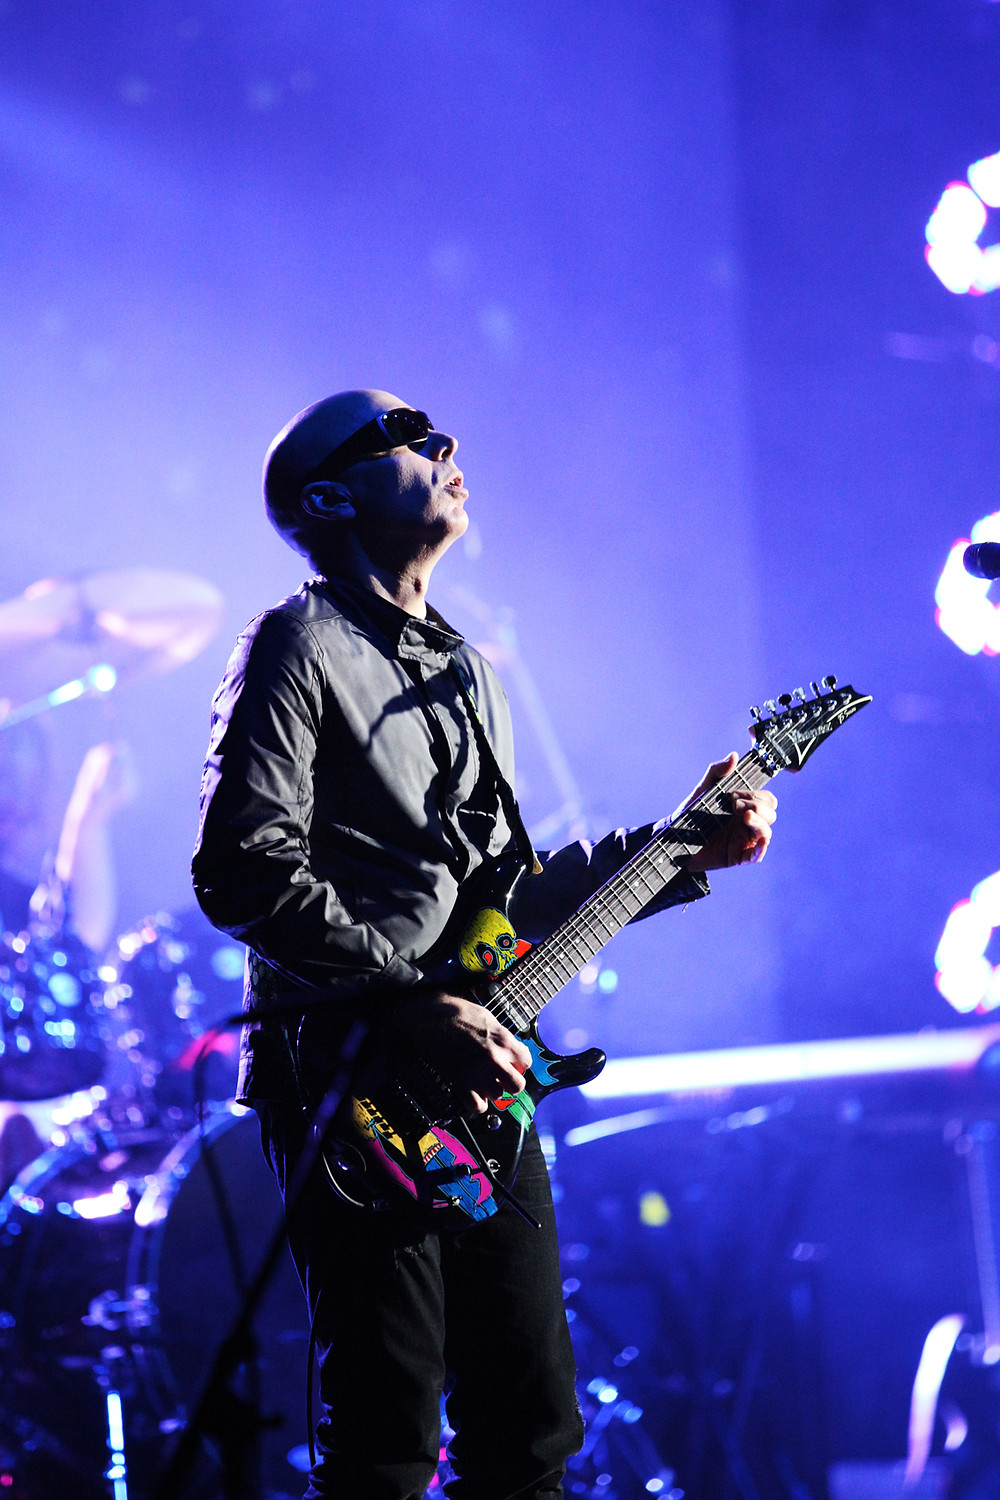 Joe Satriani ©Photo by Gili Dailes. All rights reserved